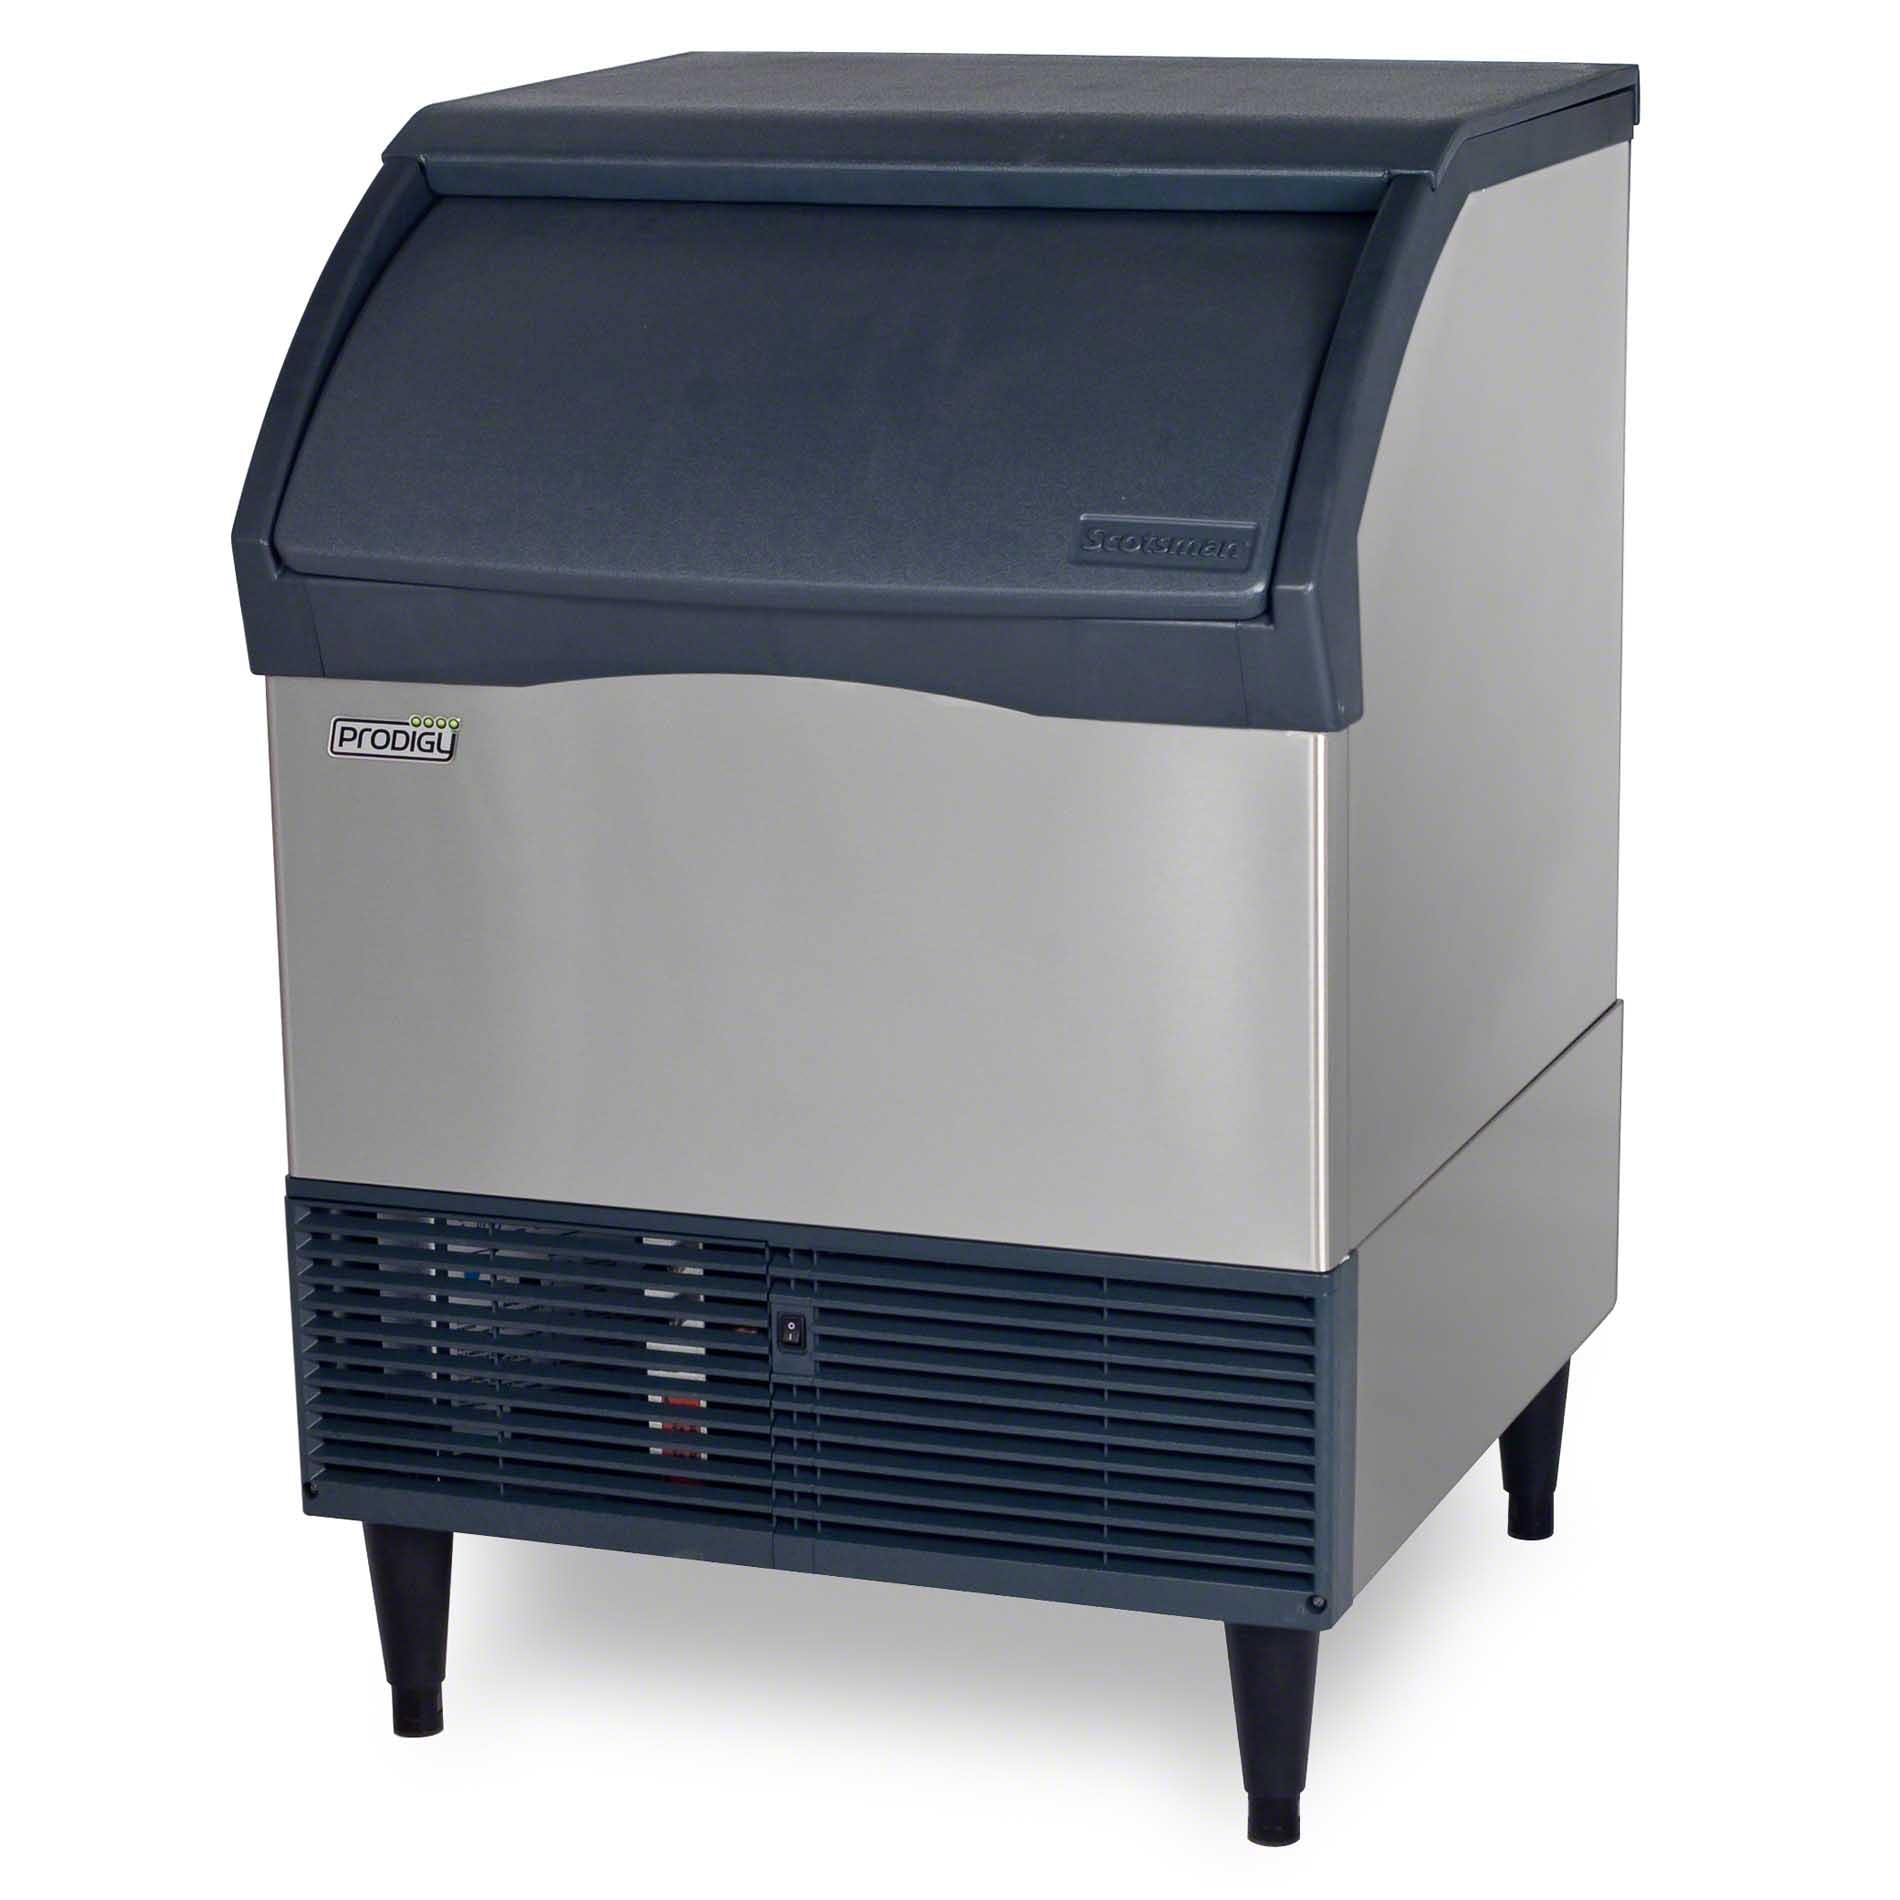 Scotsman - CU1526SA-1A 150 lb Self-Contained Cube Ice Machine - Prodigy Series - sold by Food Service Warehouse